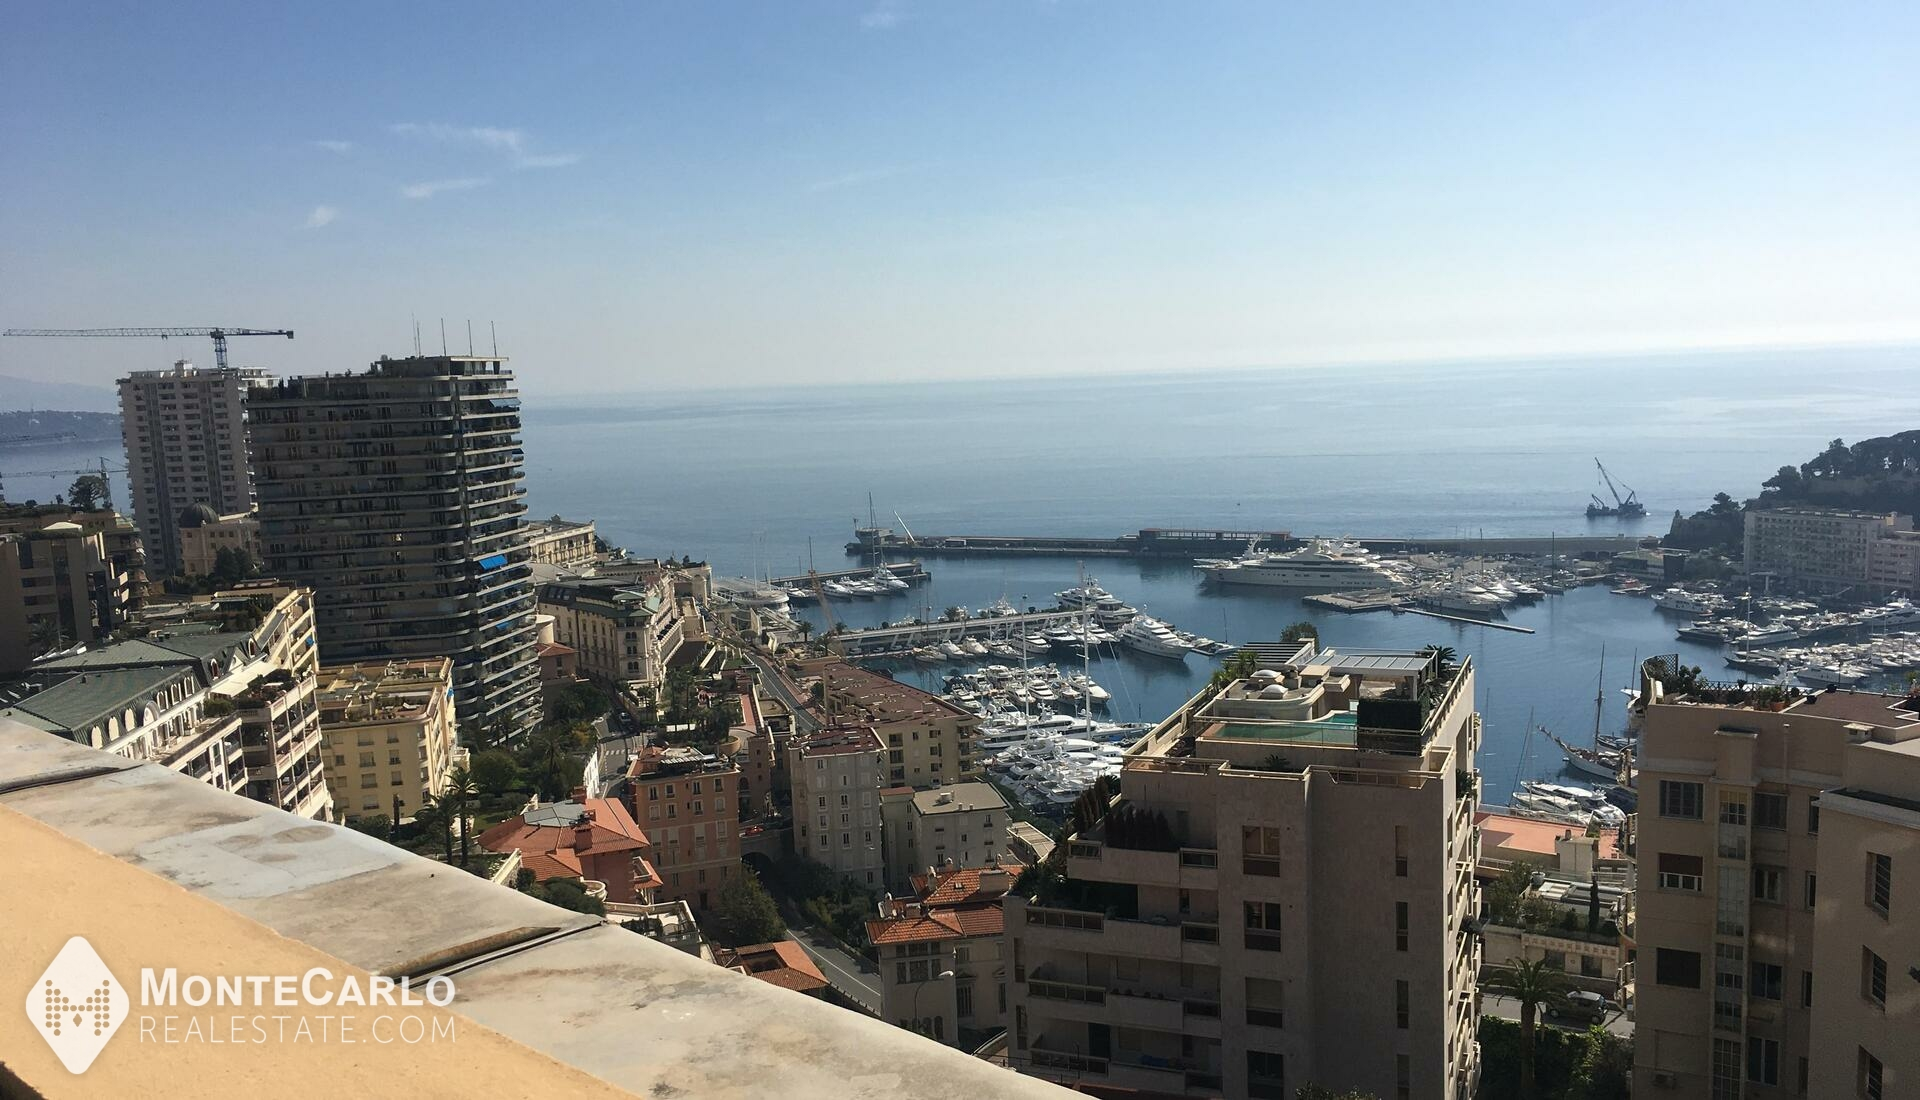 Vermietung Franzido Palace - Penthouse/Roof / 5 Zimmer : 13 900 € | Monte-Carlo Real Estate [HHL261621]